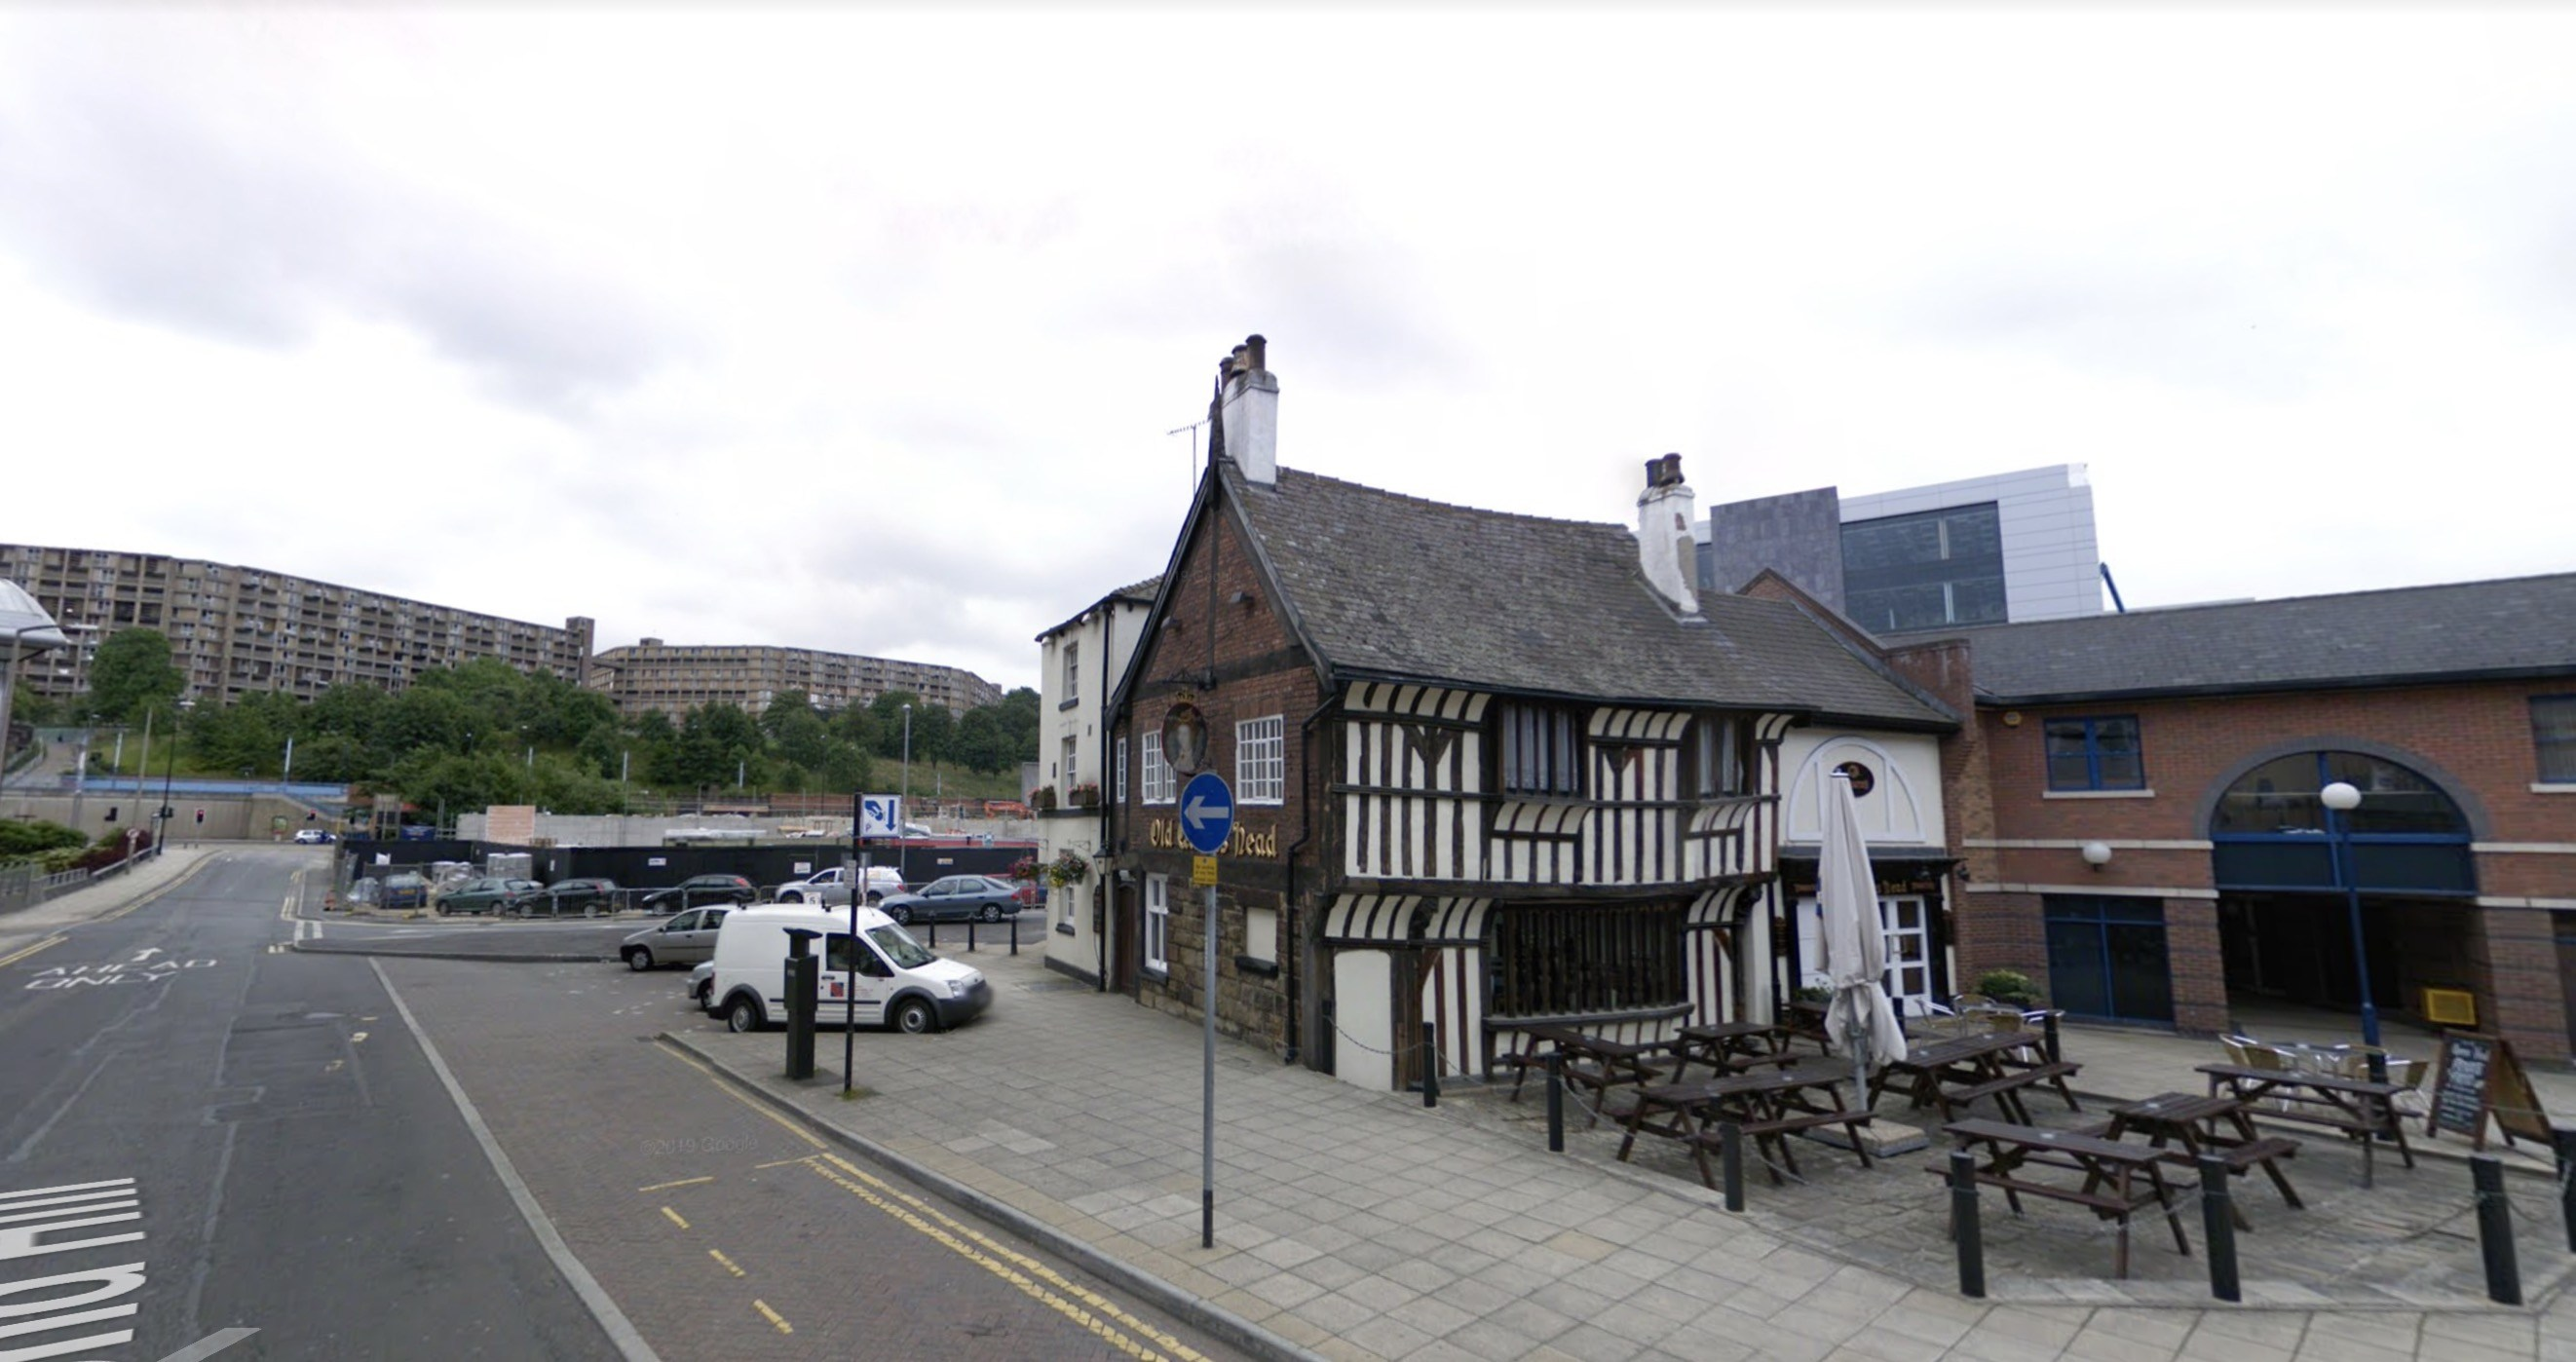 The Old Queens Head pub in Pond Street Sheffield